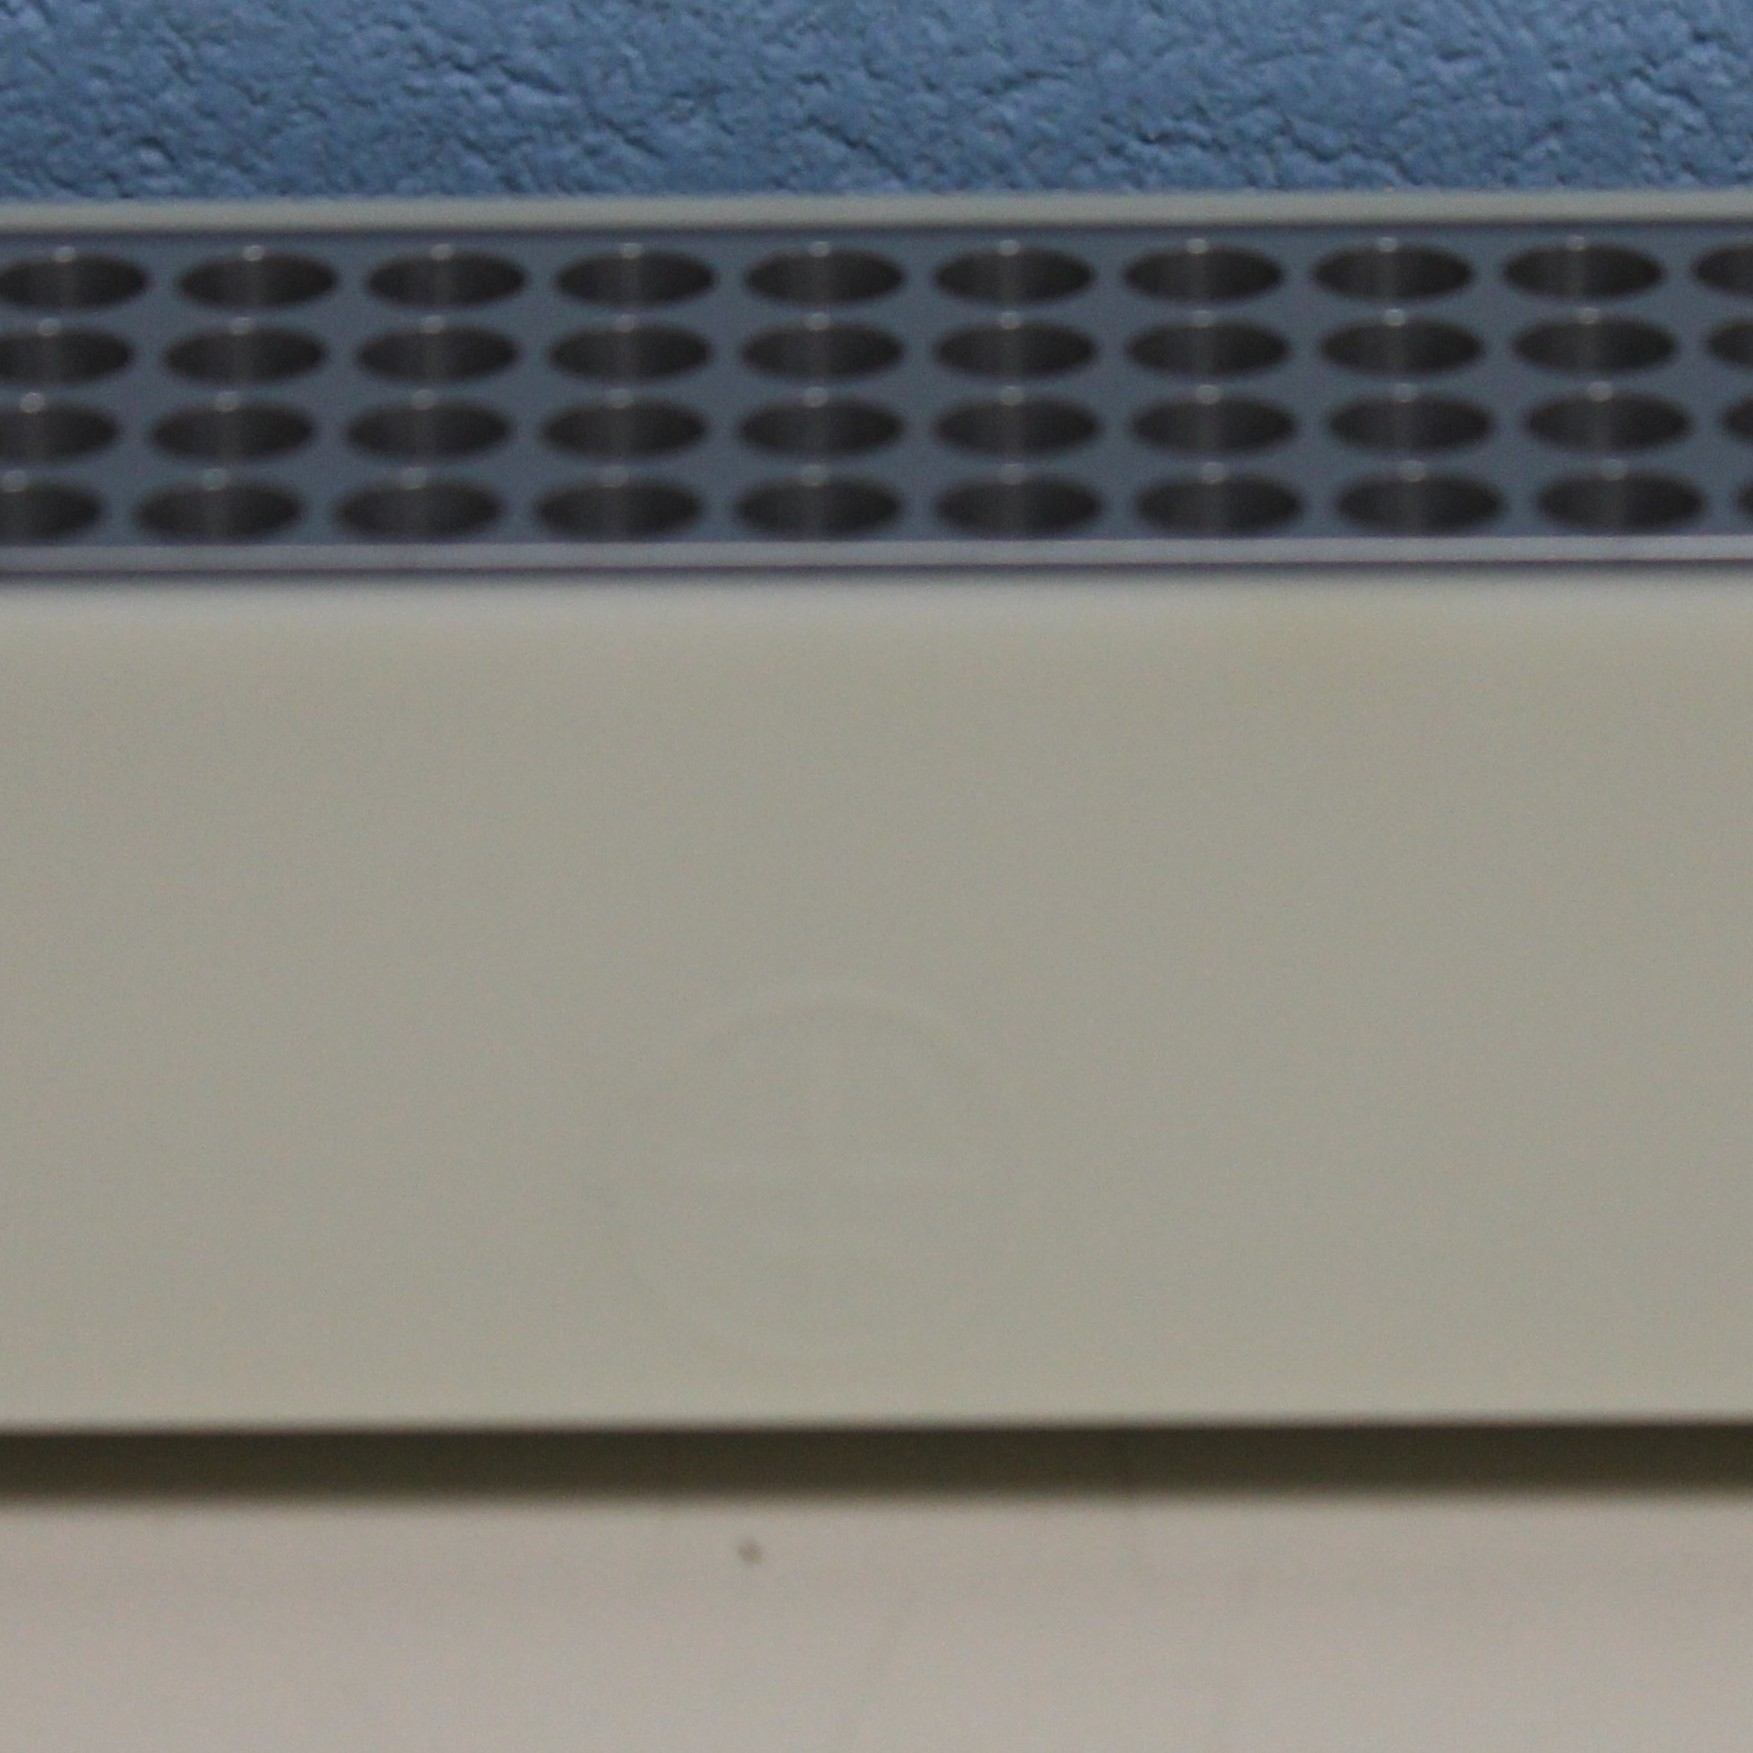 Gilson Code 30 Heating/Chilling Thermostated Rack Image